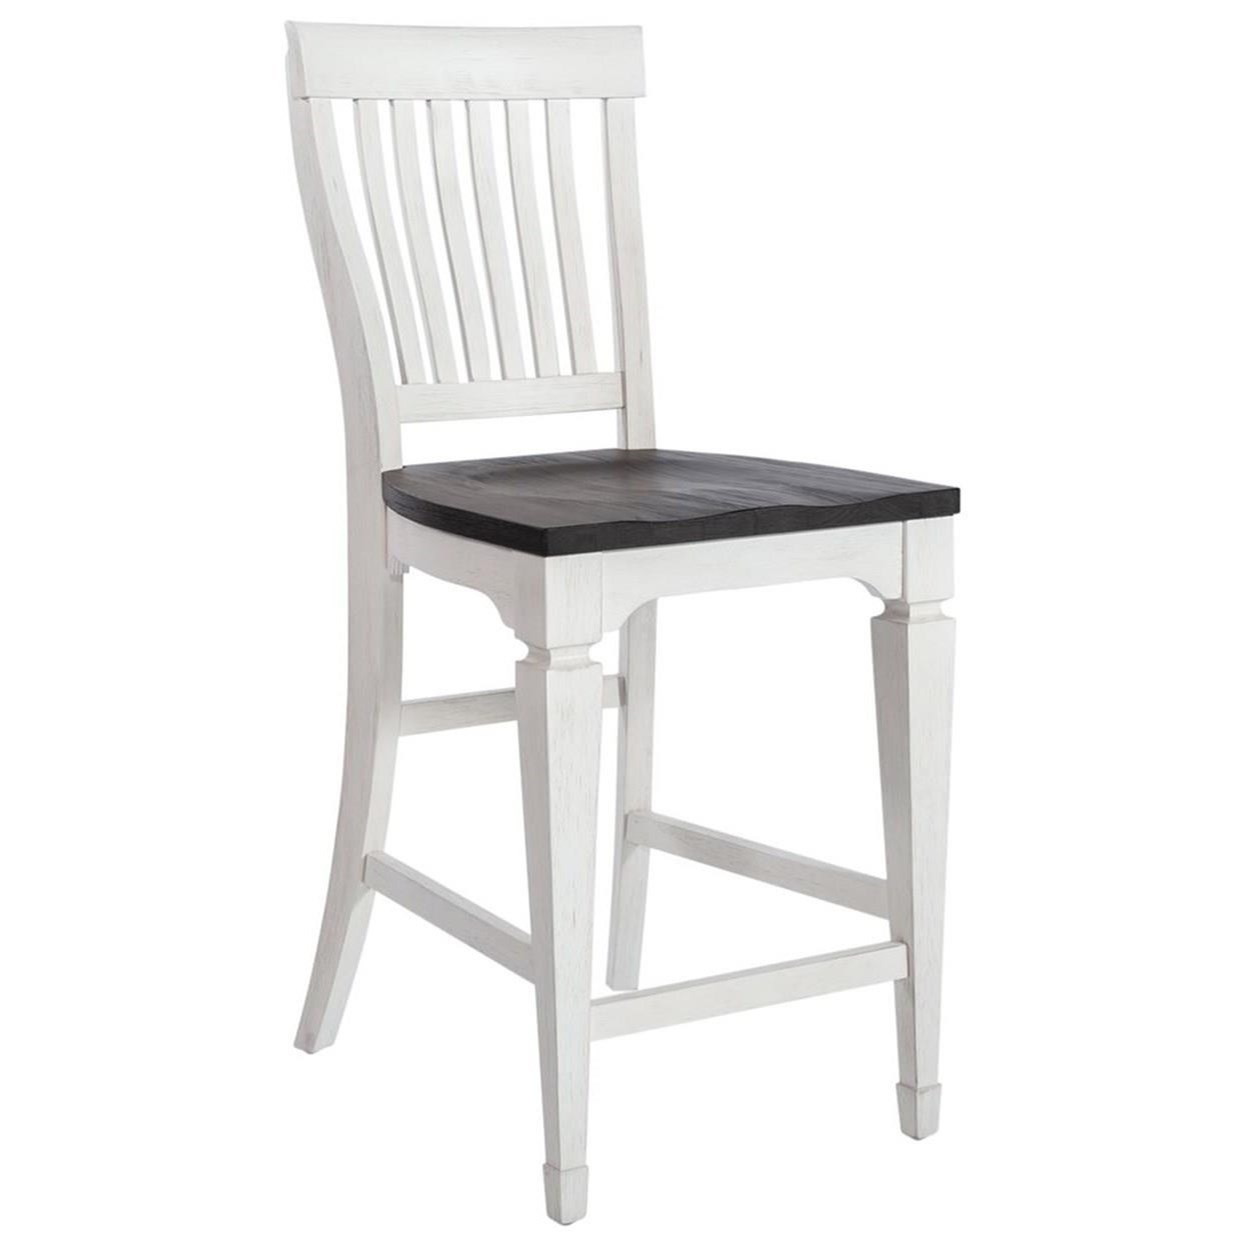 Allyson Park Counter Height Slat Back Chair by Liberty Furniture at Catalog Outlet